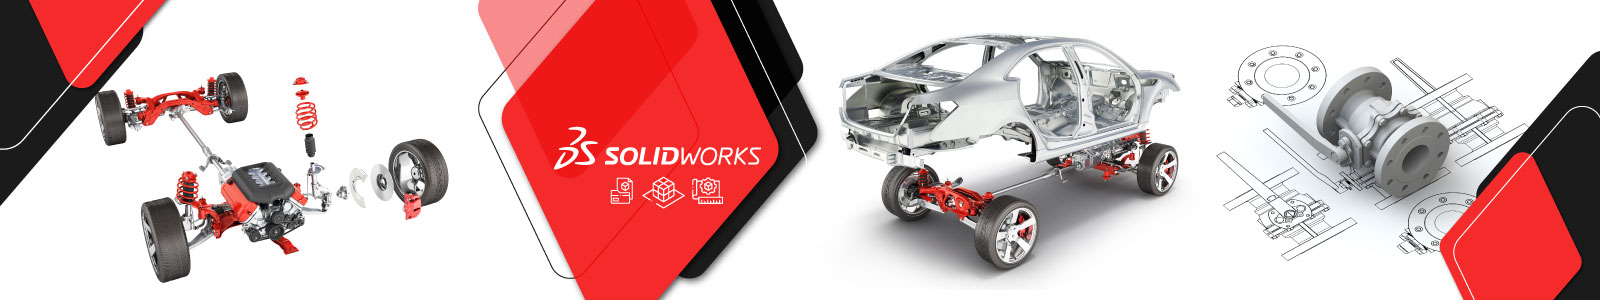 SolidWorks – 3D Modelling and Drawing-banner